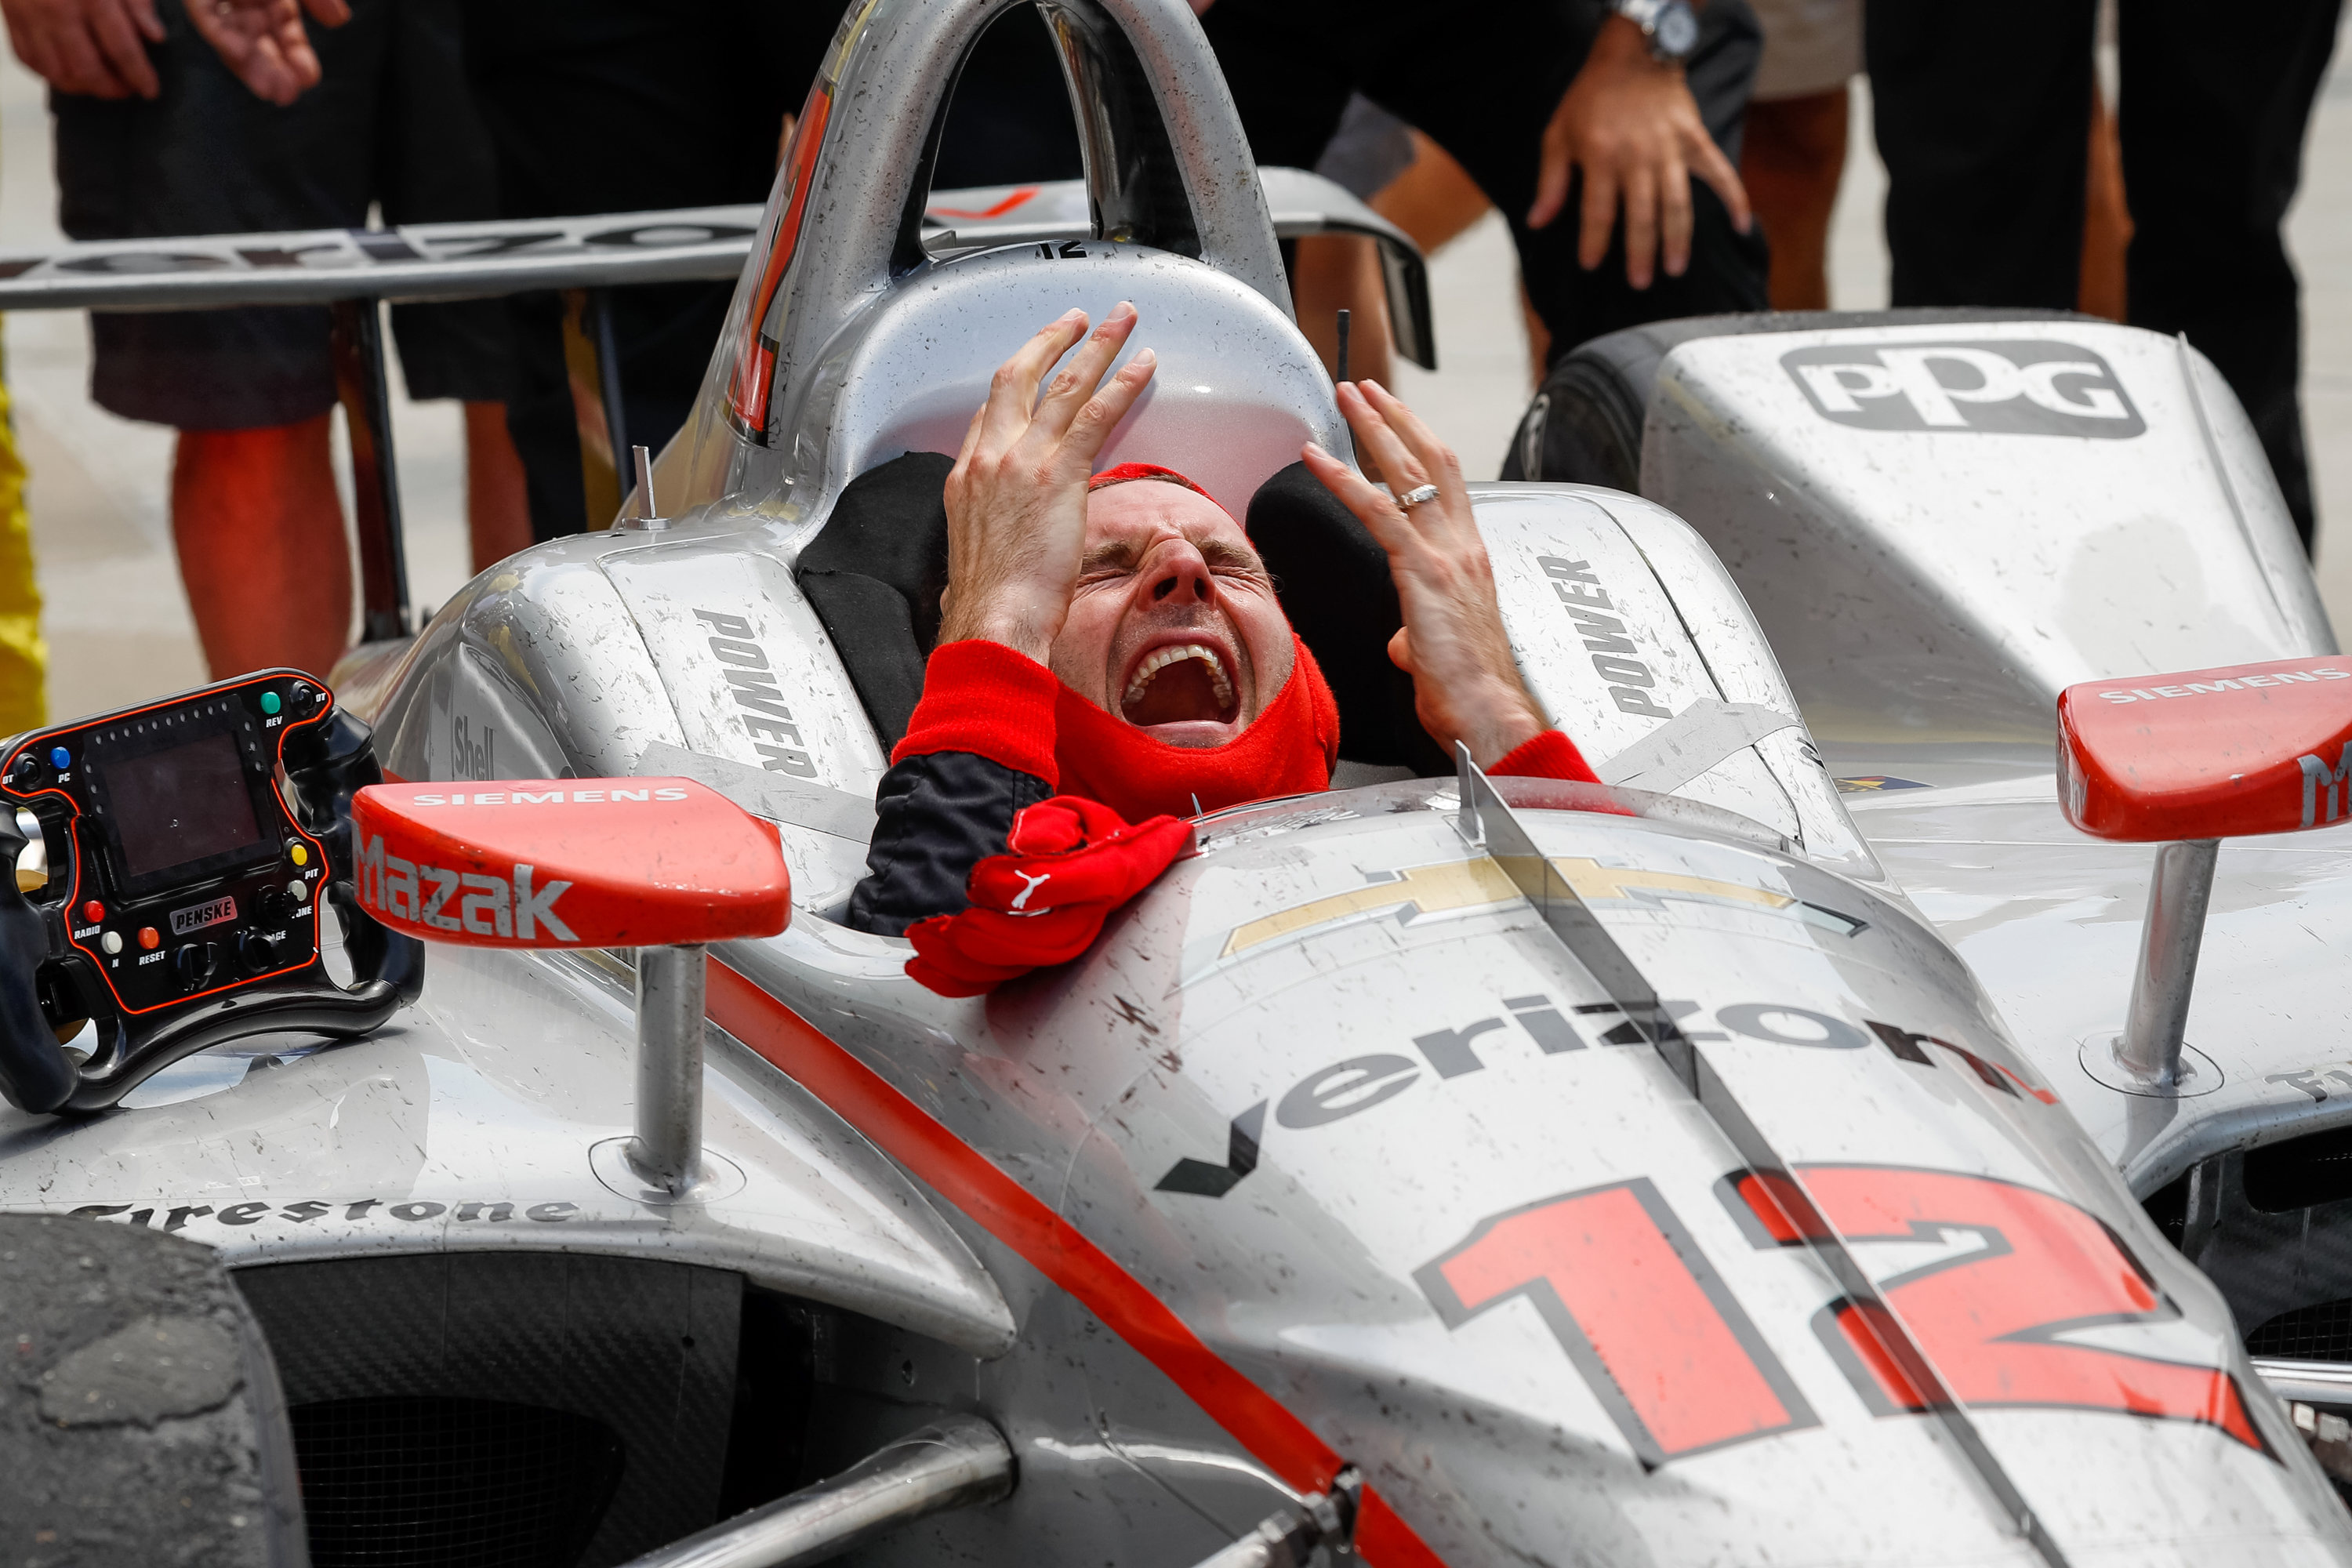 Indy Race Car Driver Will Power